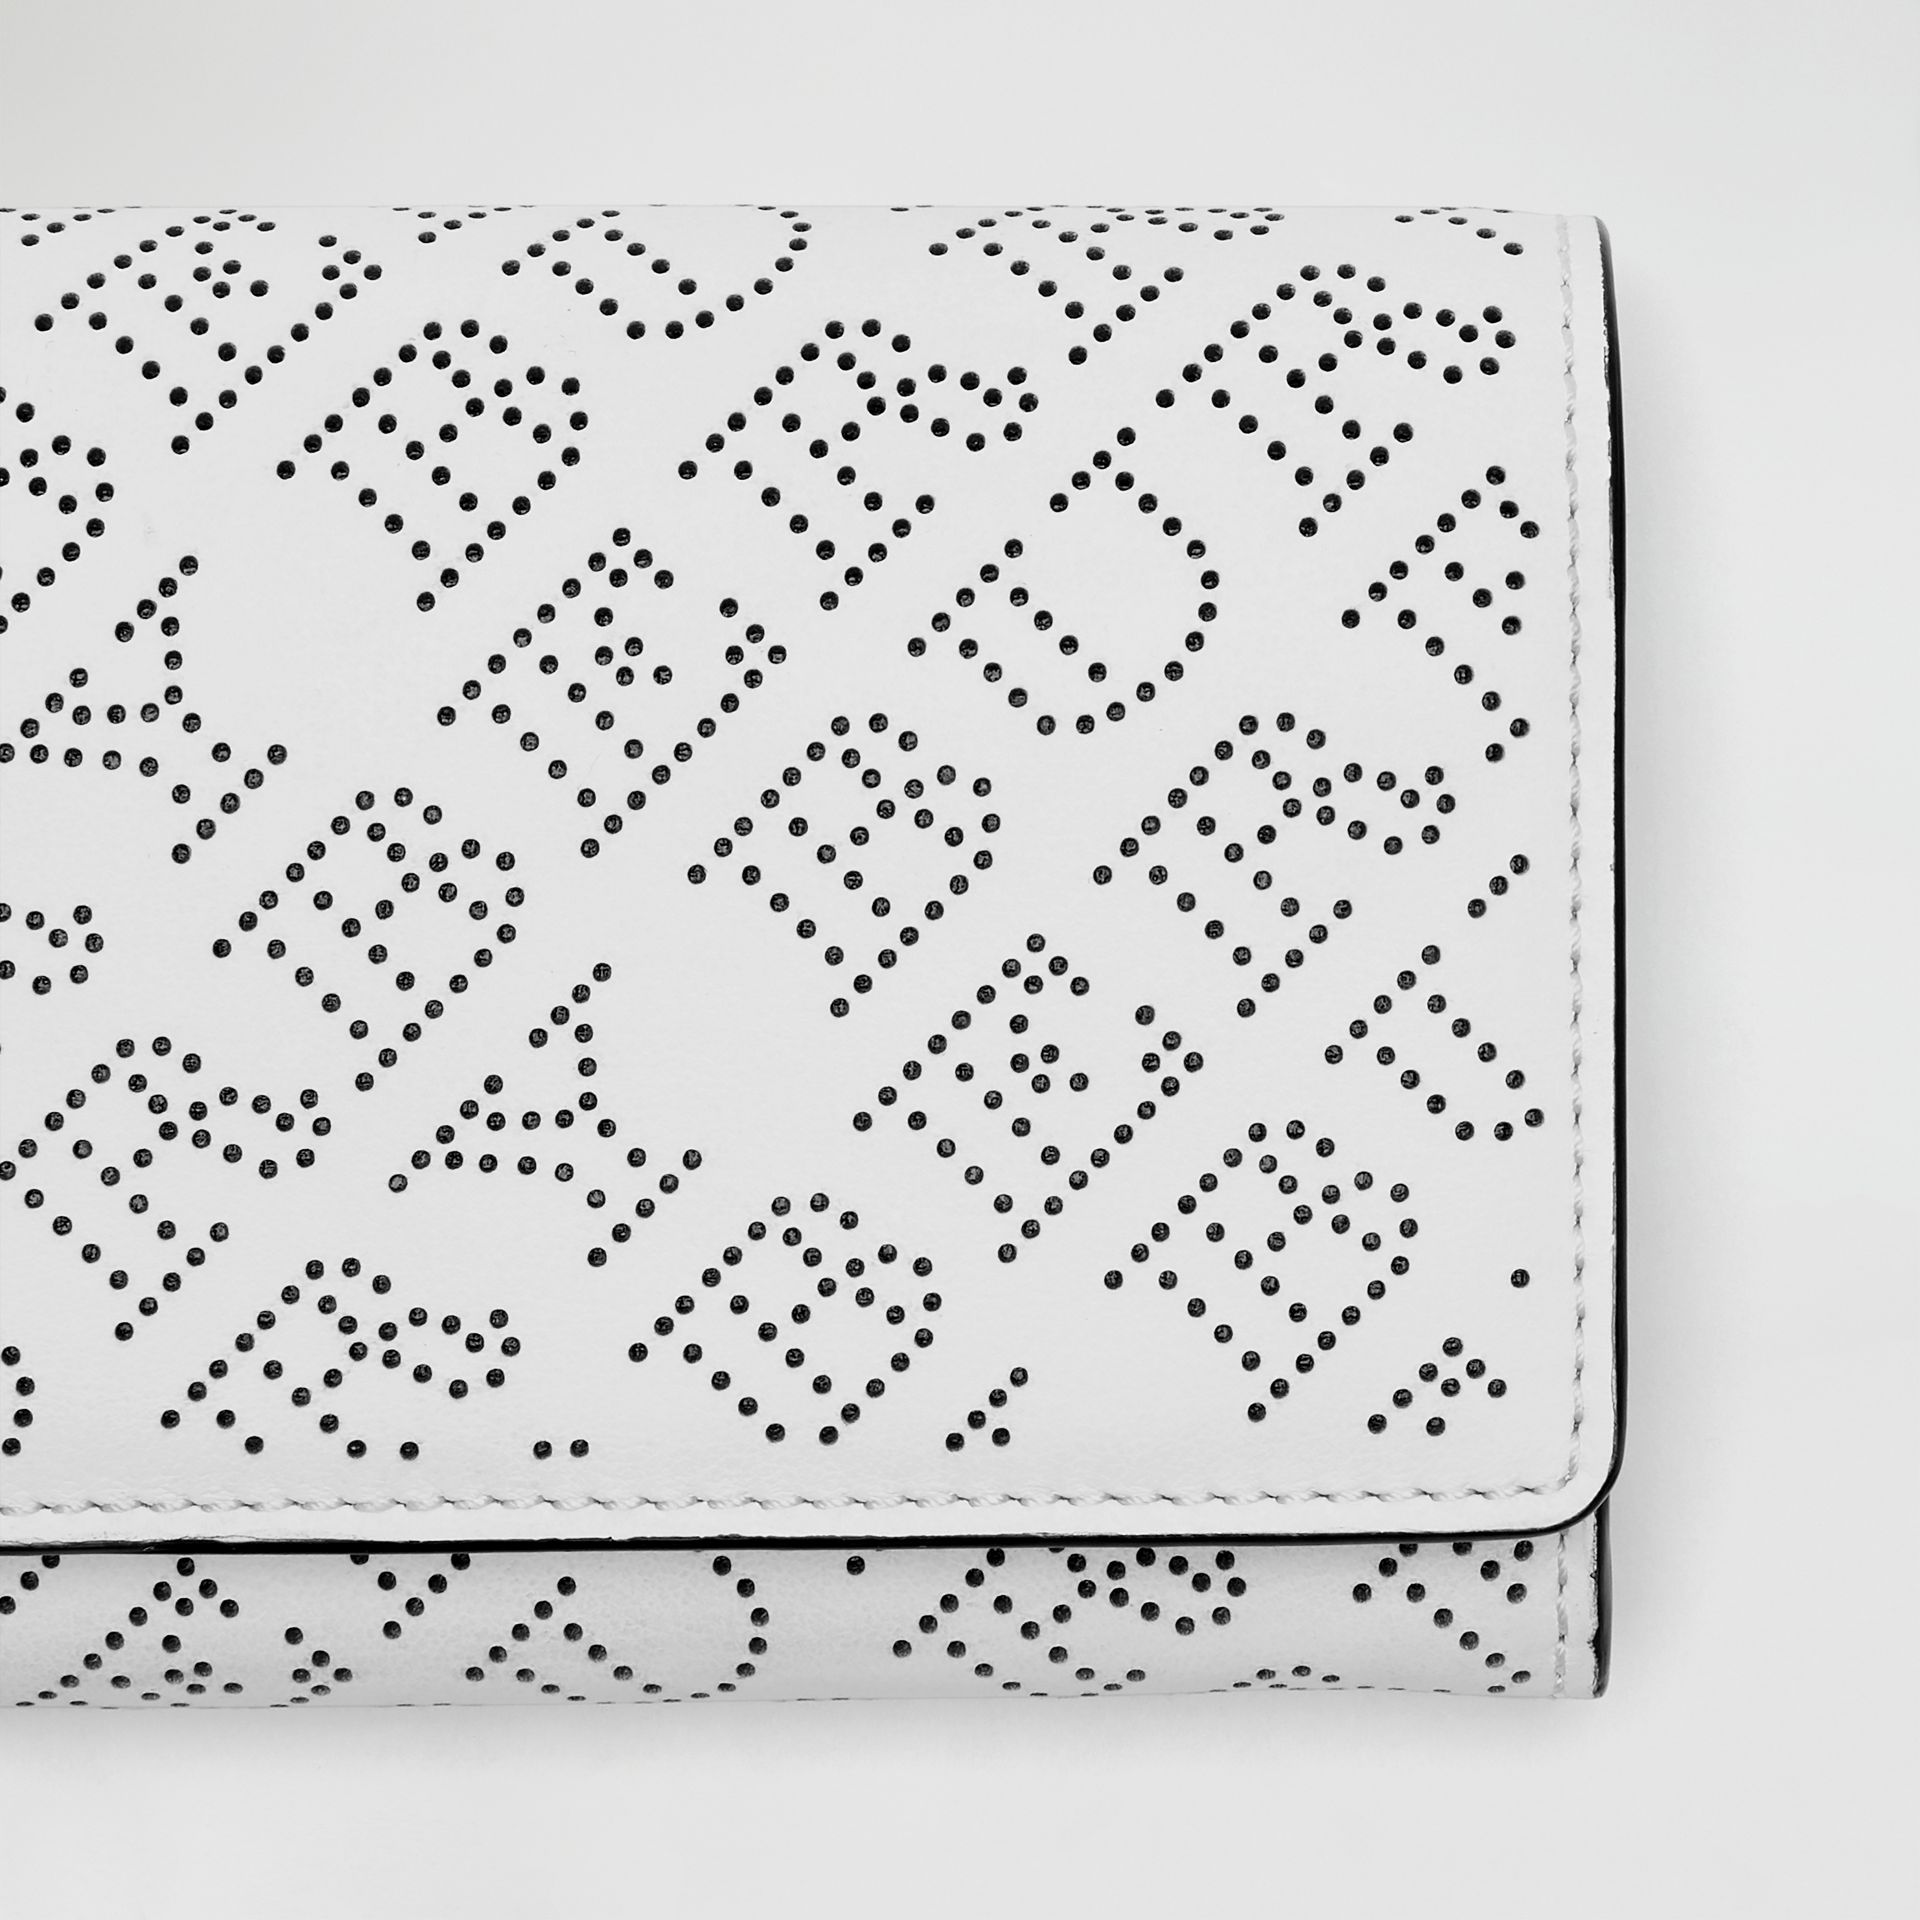 Perforated Logo Leather Continental Wallet in White - Women | Burberry - gallery image 1